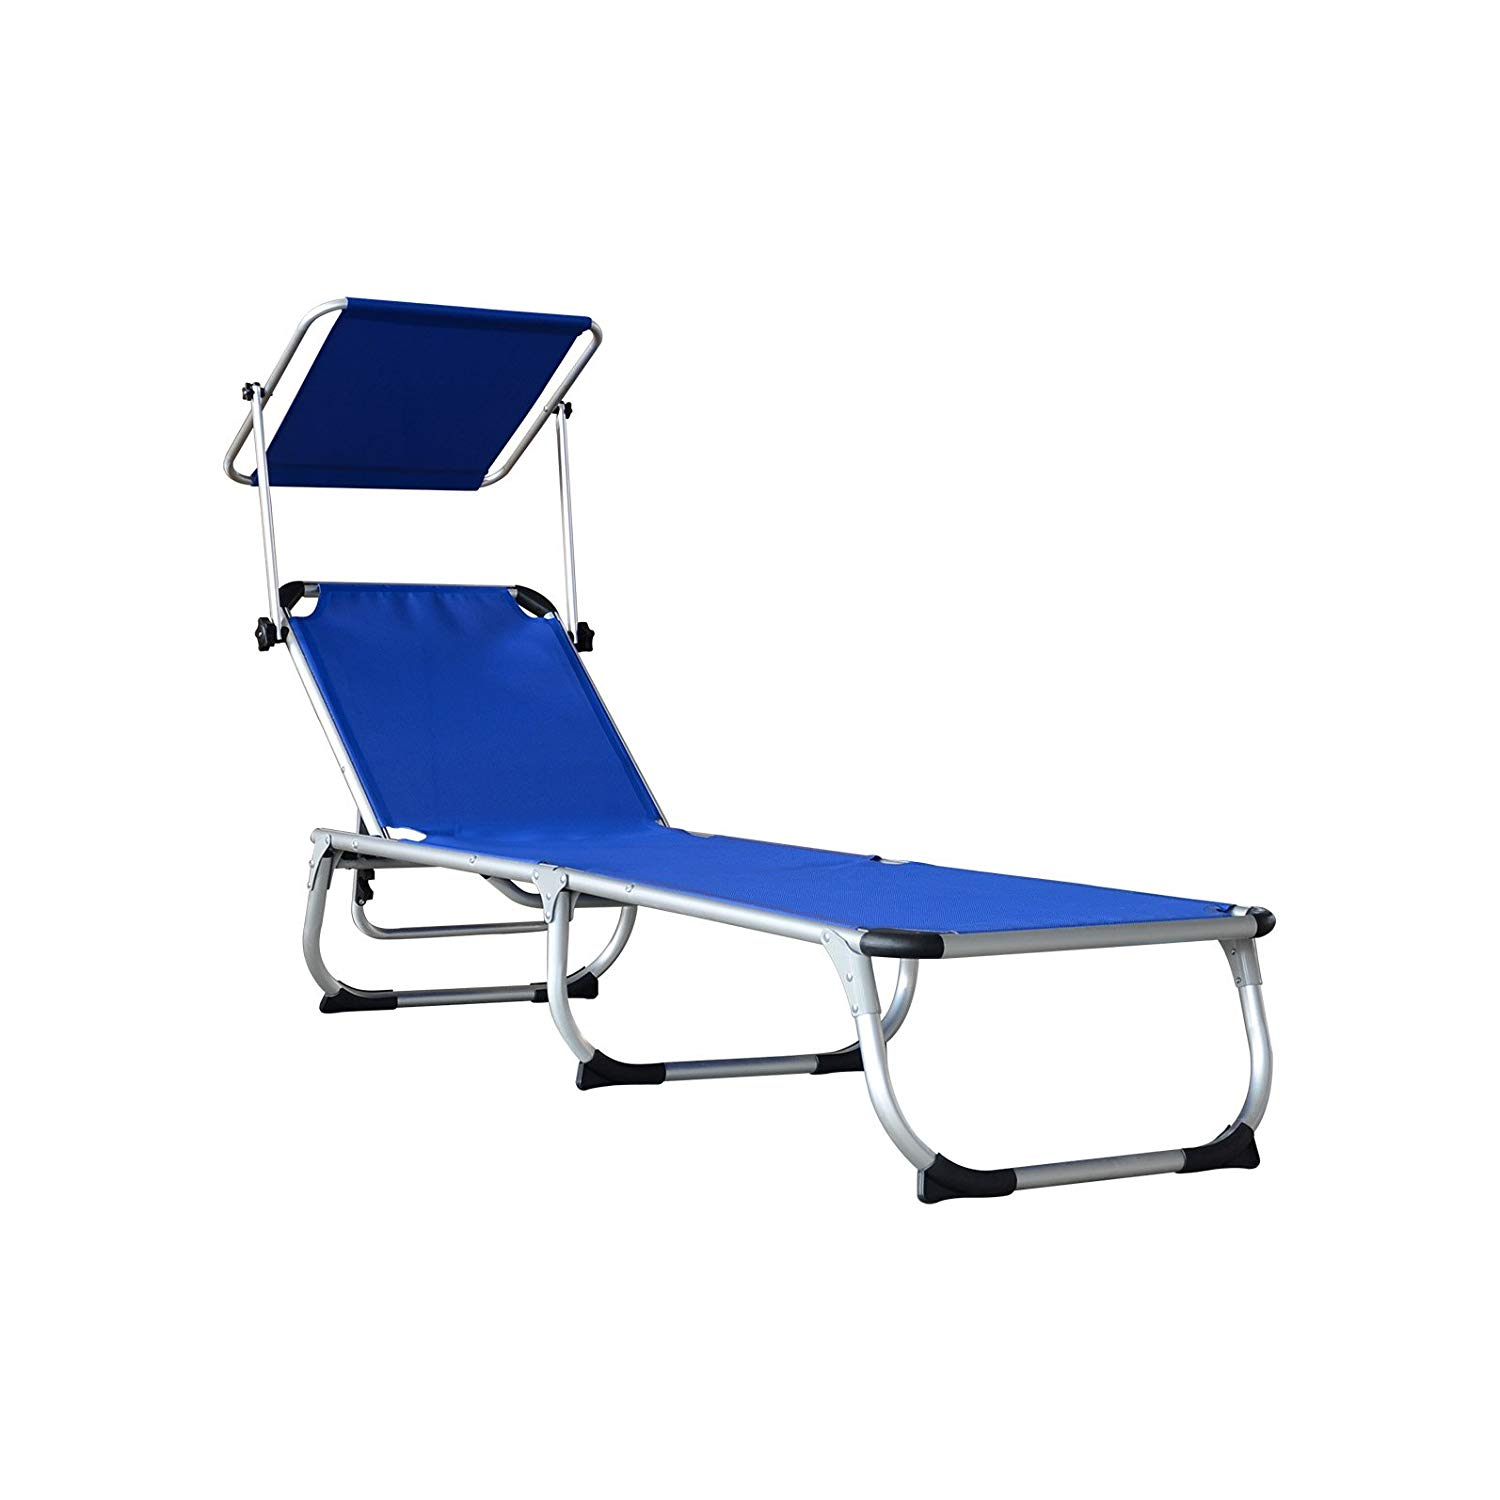 outdoor folding lounge chairs best dxracer chair orno ttobe relaxer bed with sun shade portable walmart com